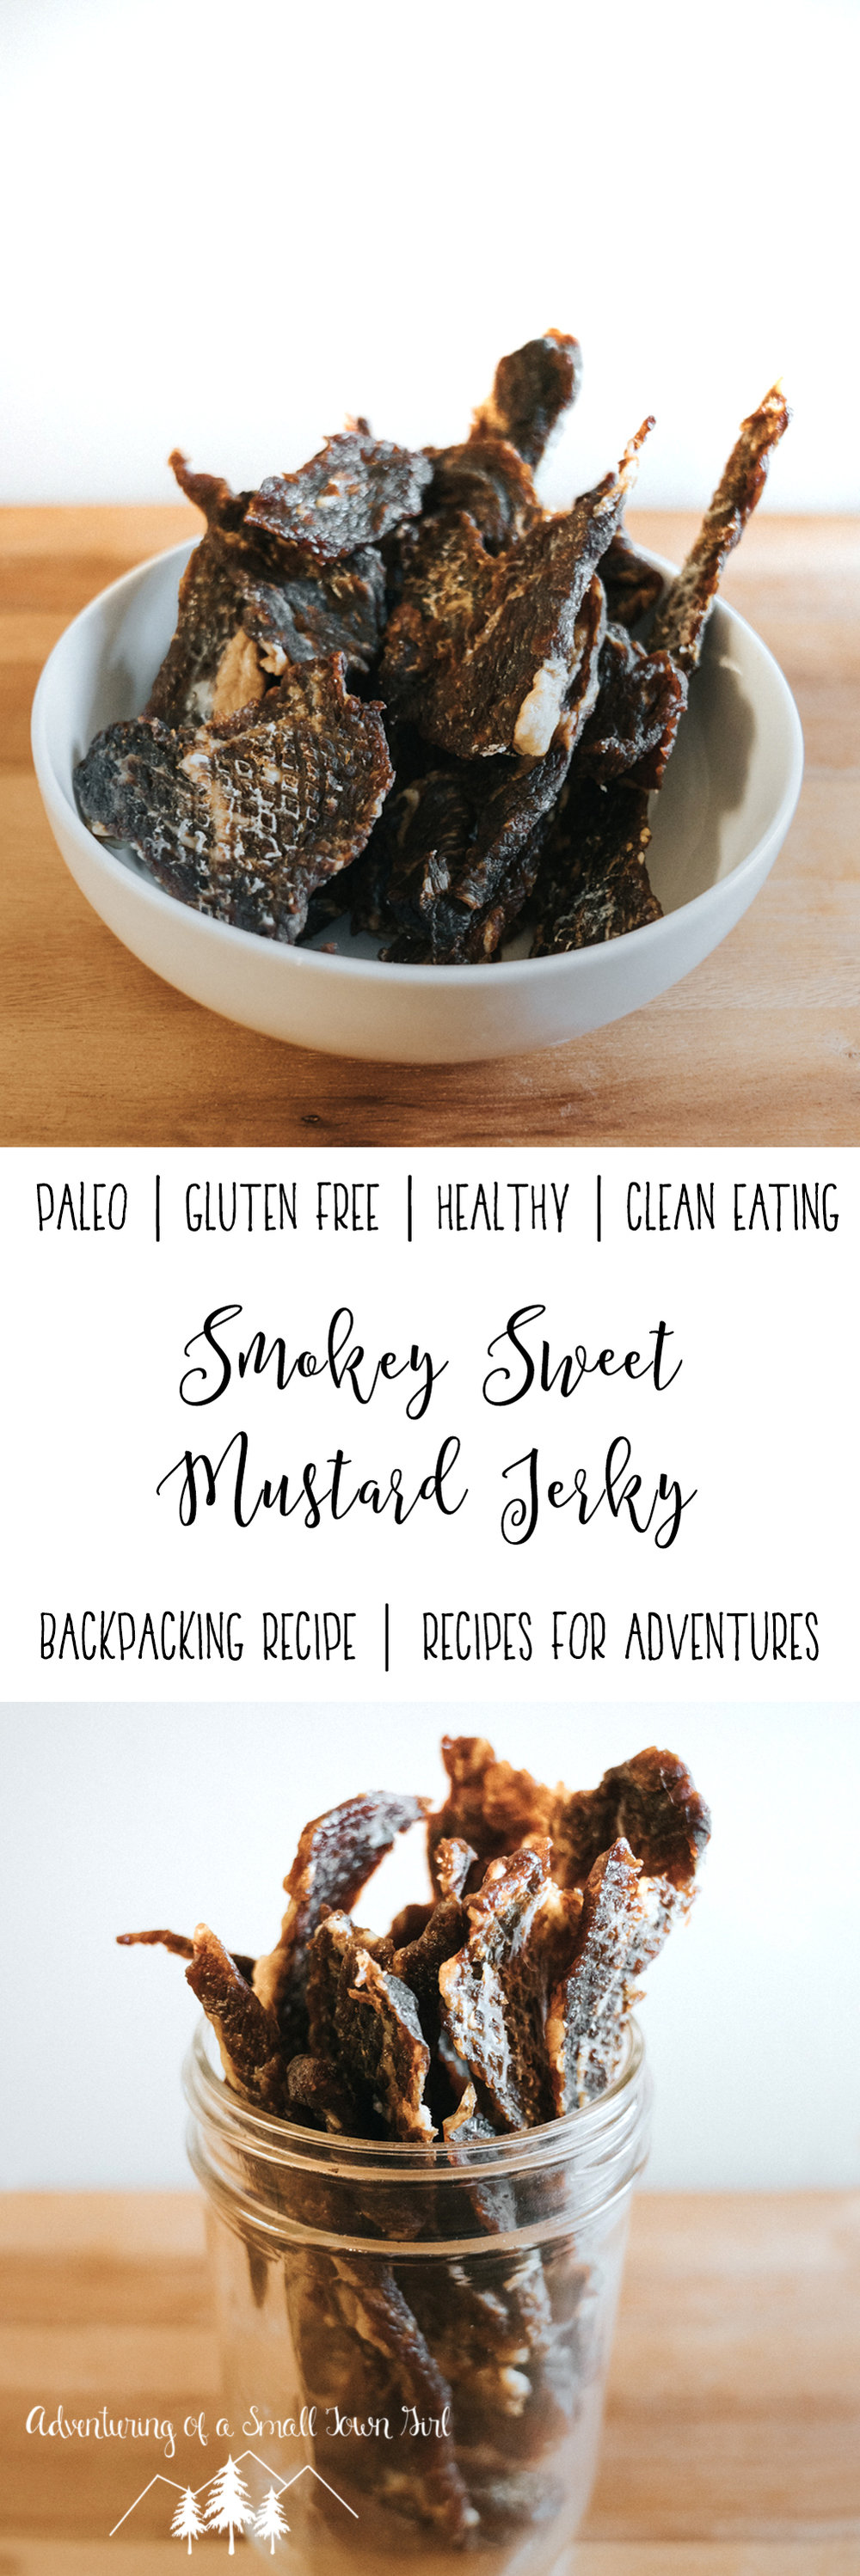 Dehydrated Smokey Sweet Mustard Jerky Recipe by Adventuring of a Small Town Girl - Recipes for Backpacking - Recipes for Adventures - Recipes for the trail Beef Jerky Recipe